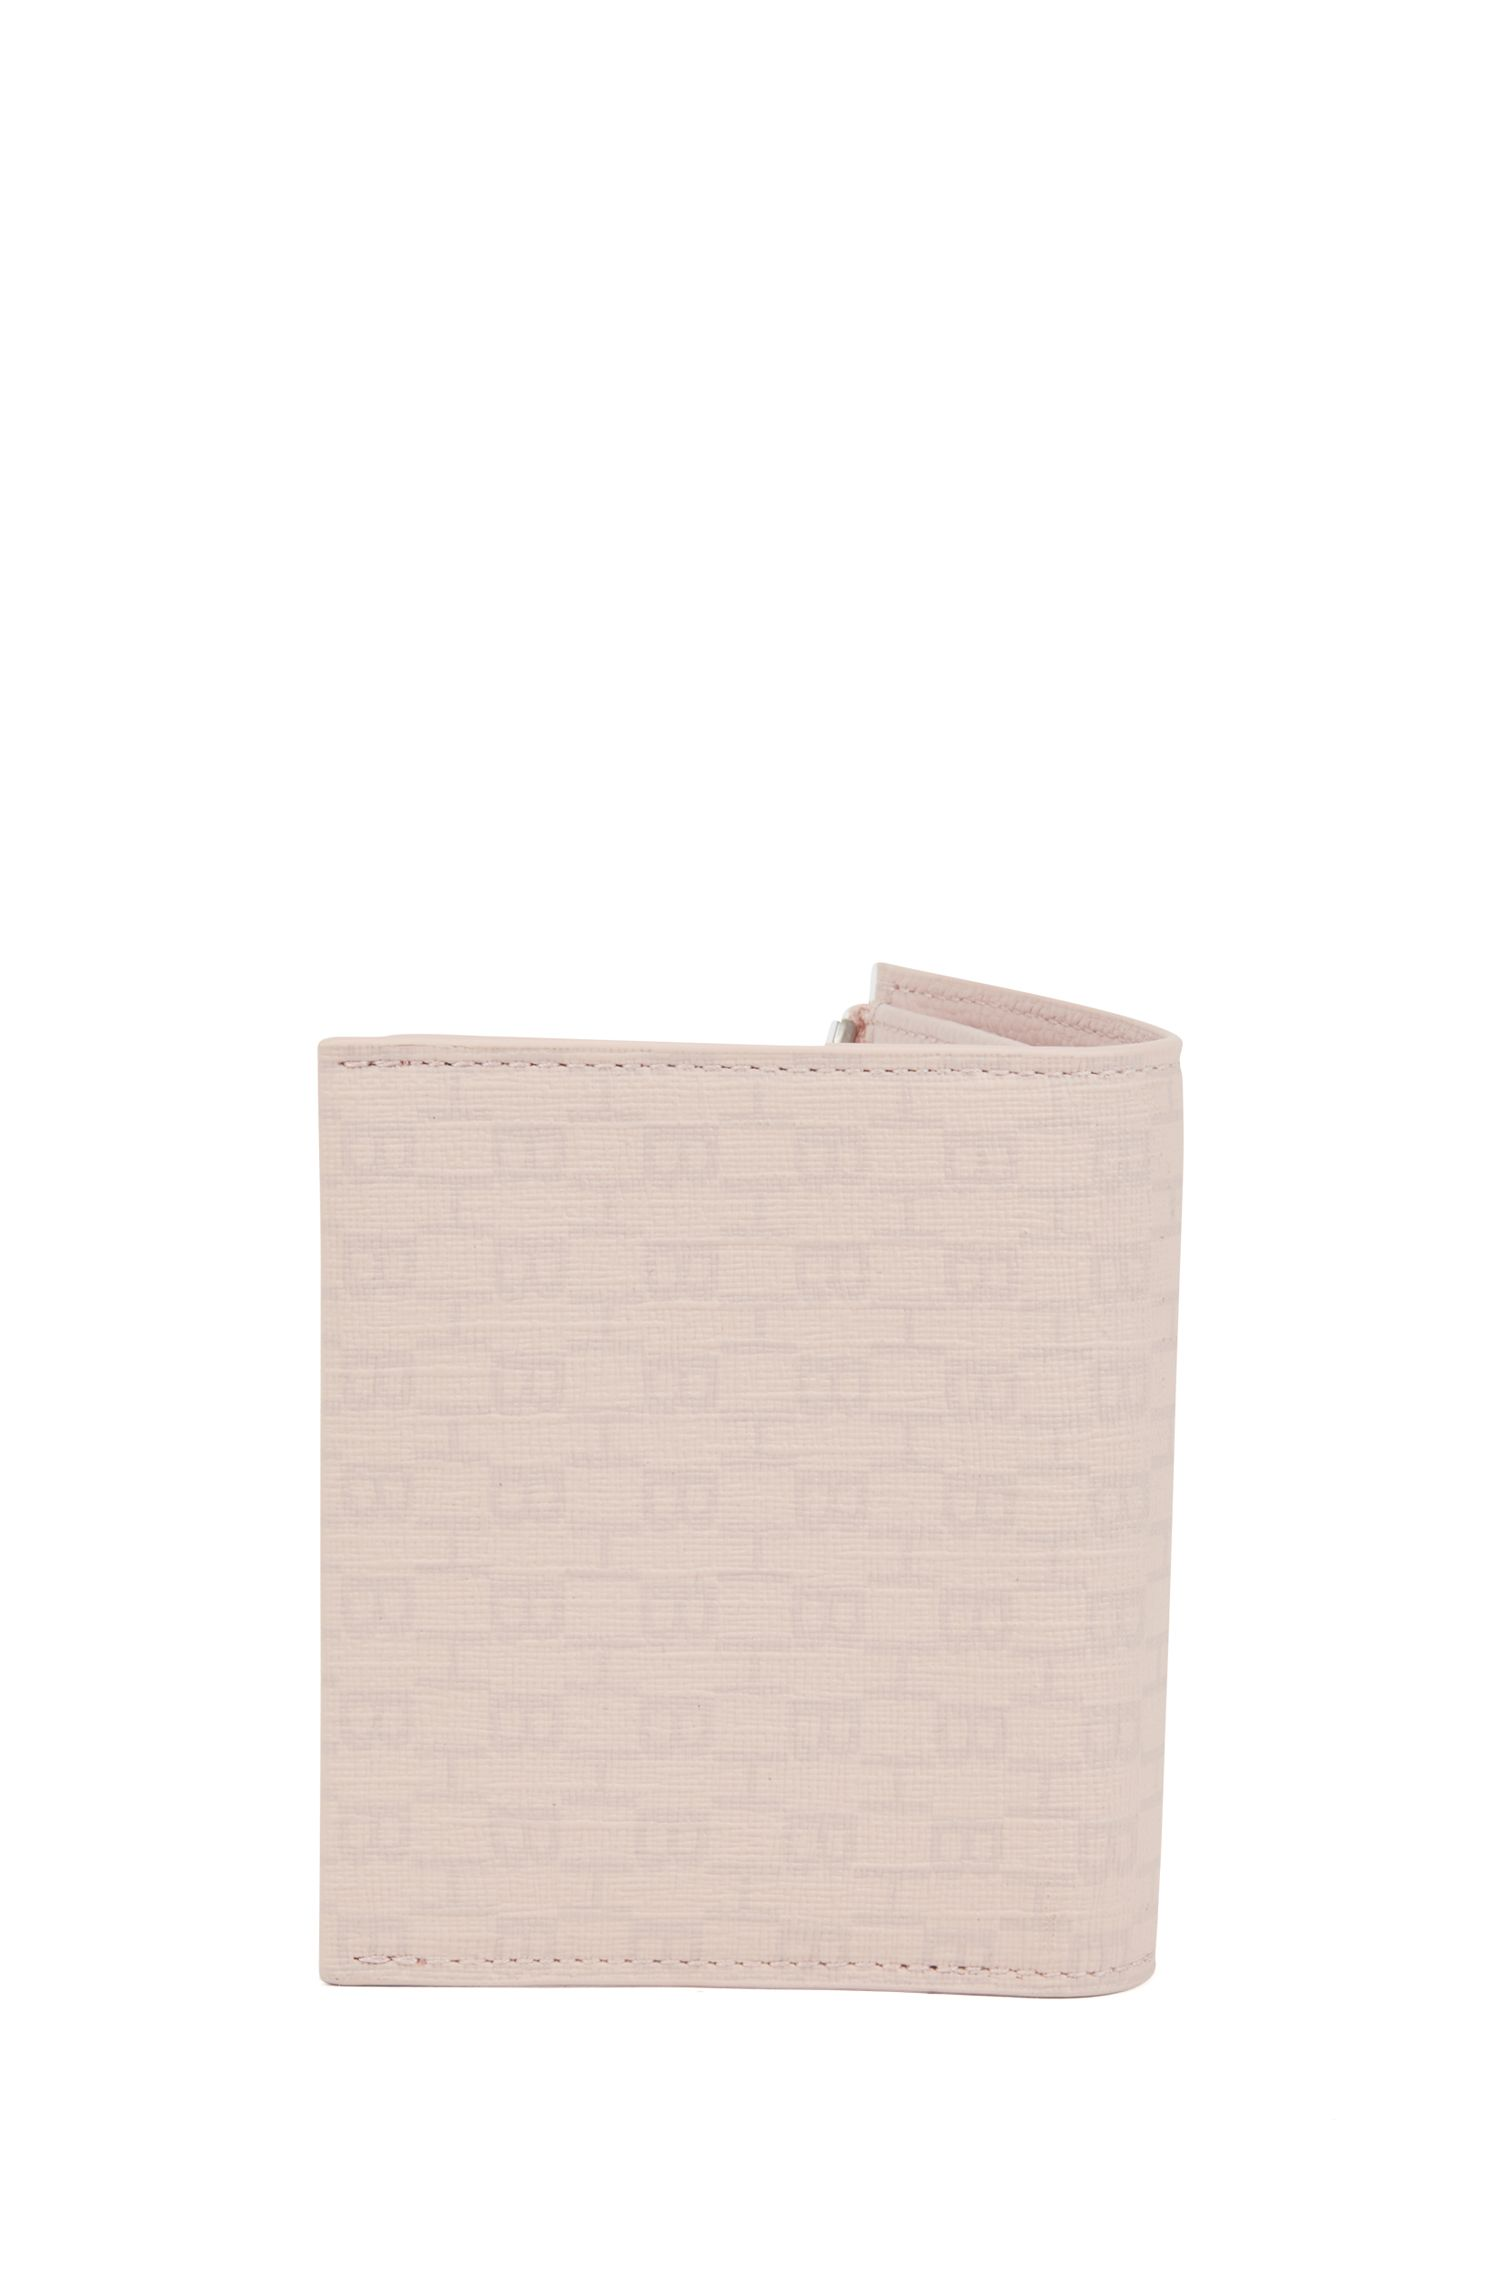 Zippered wallet in fabric with all-over monogram print, light pink